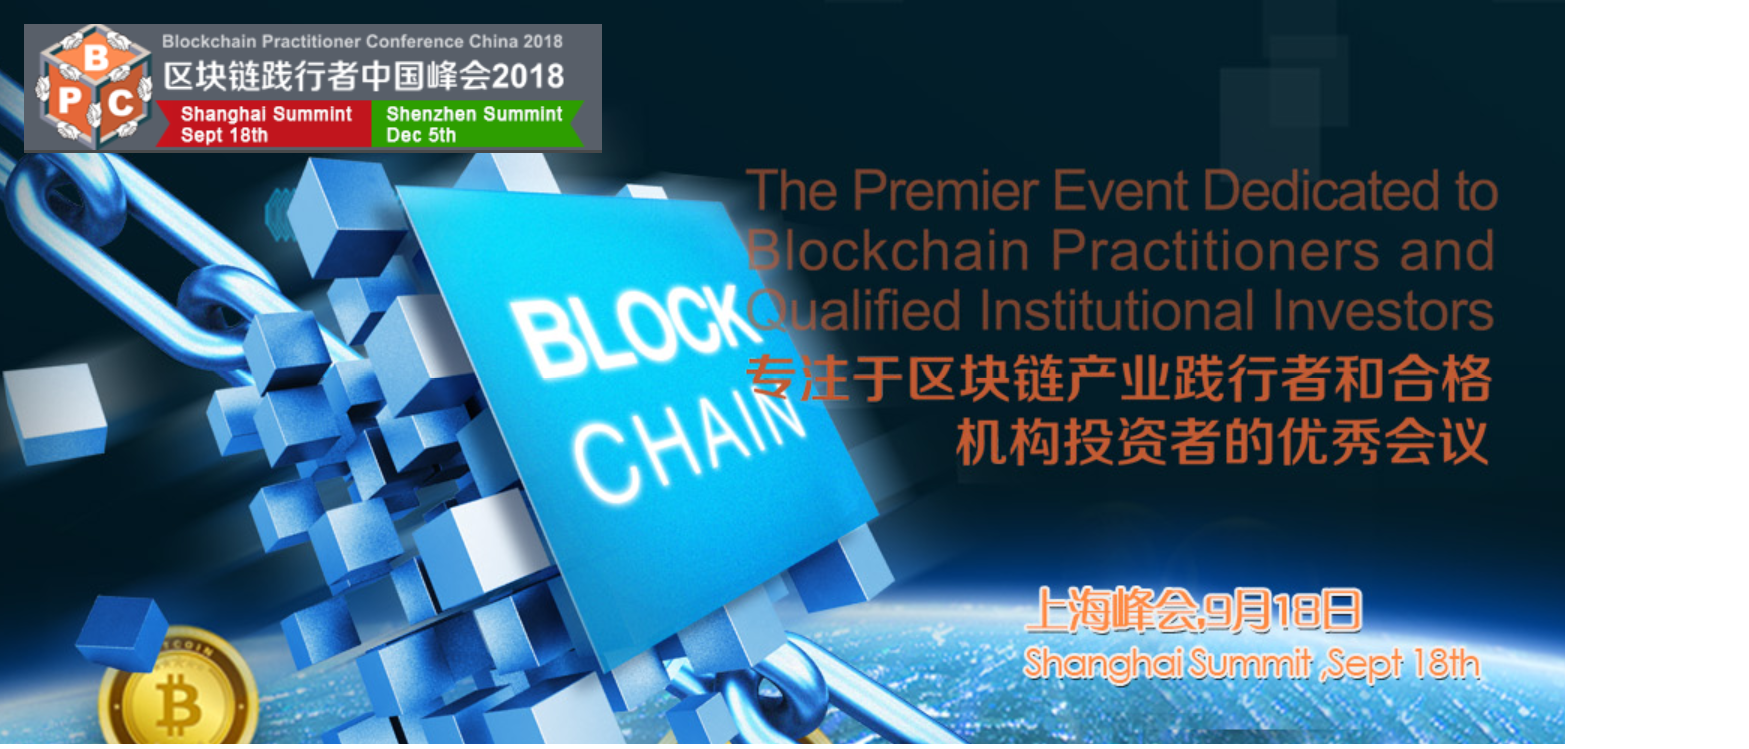 Blockchain Practitioner Conference China 2018